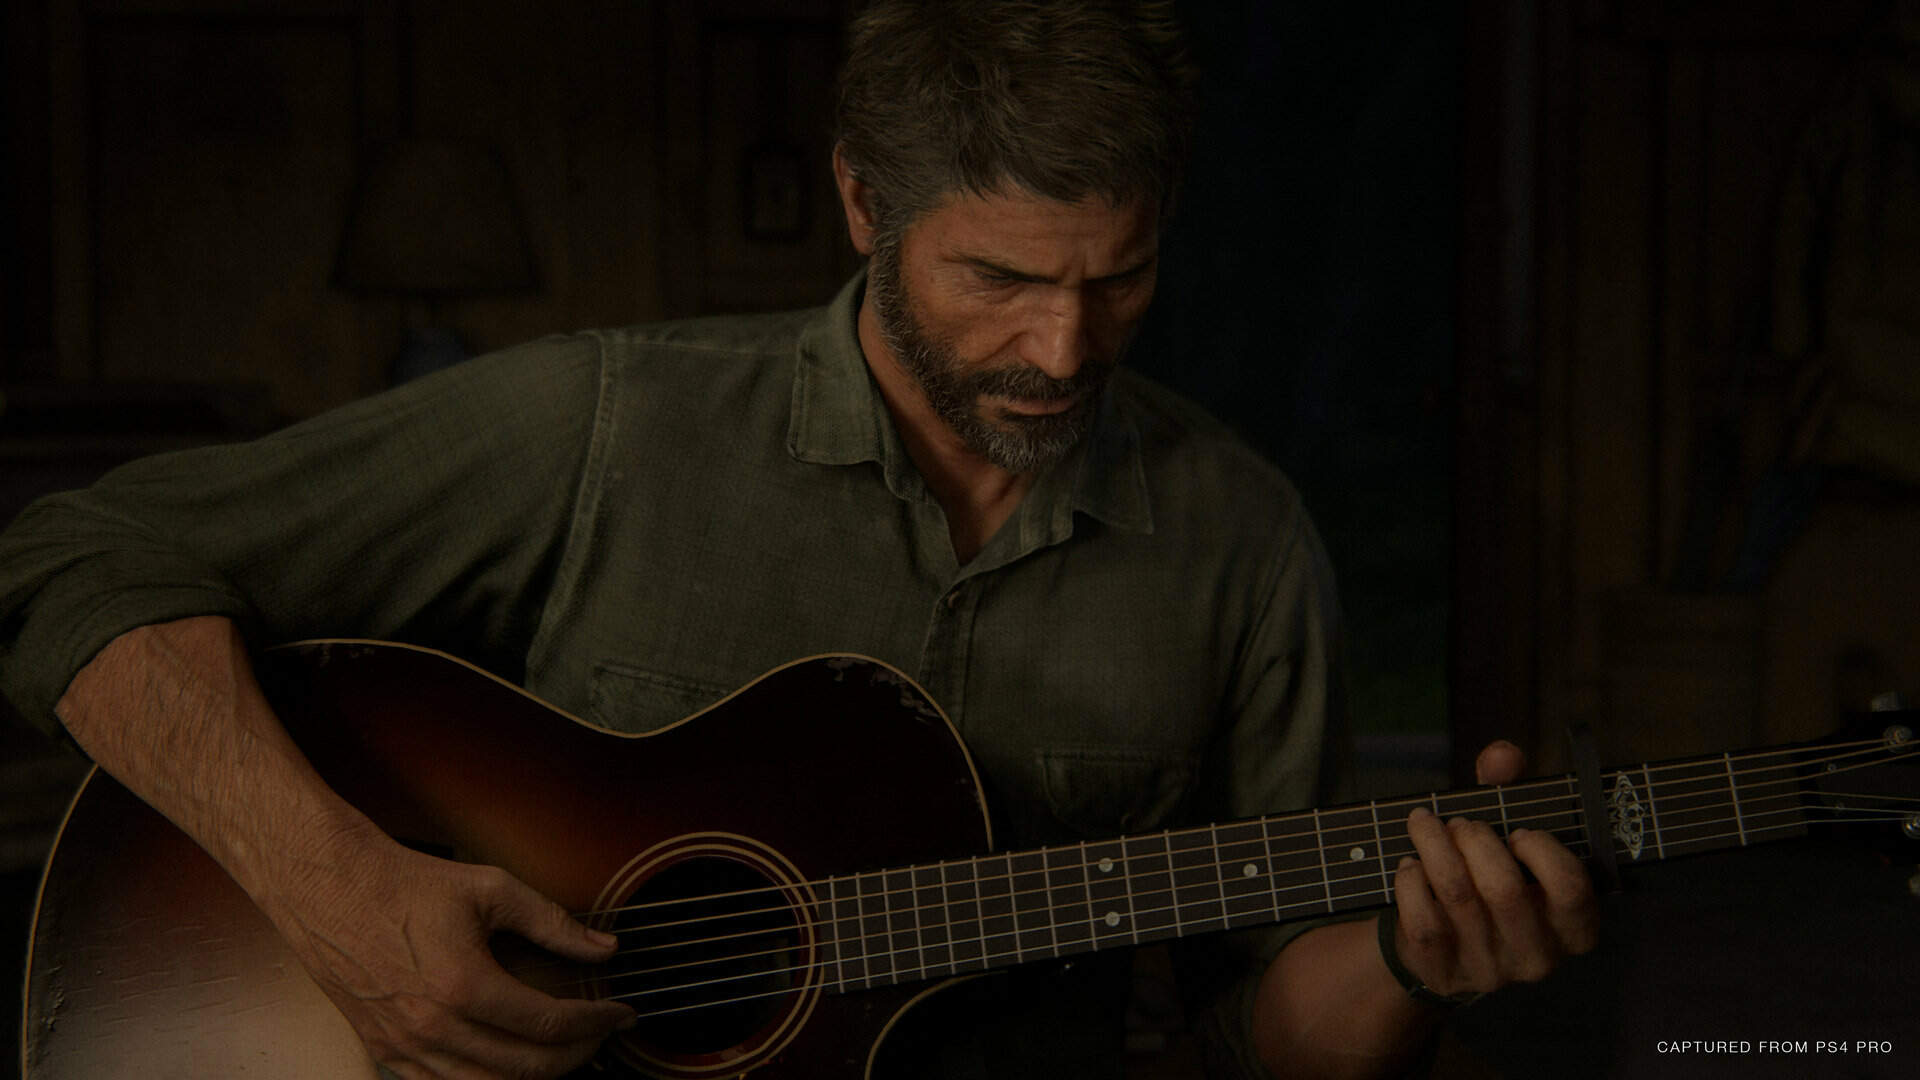 Completing The Last of Us Part 2 on Grounded Unlocks a Special Song